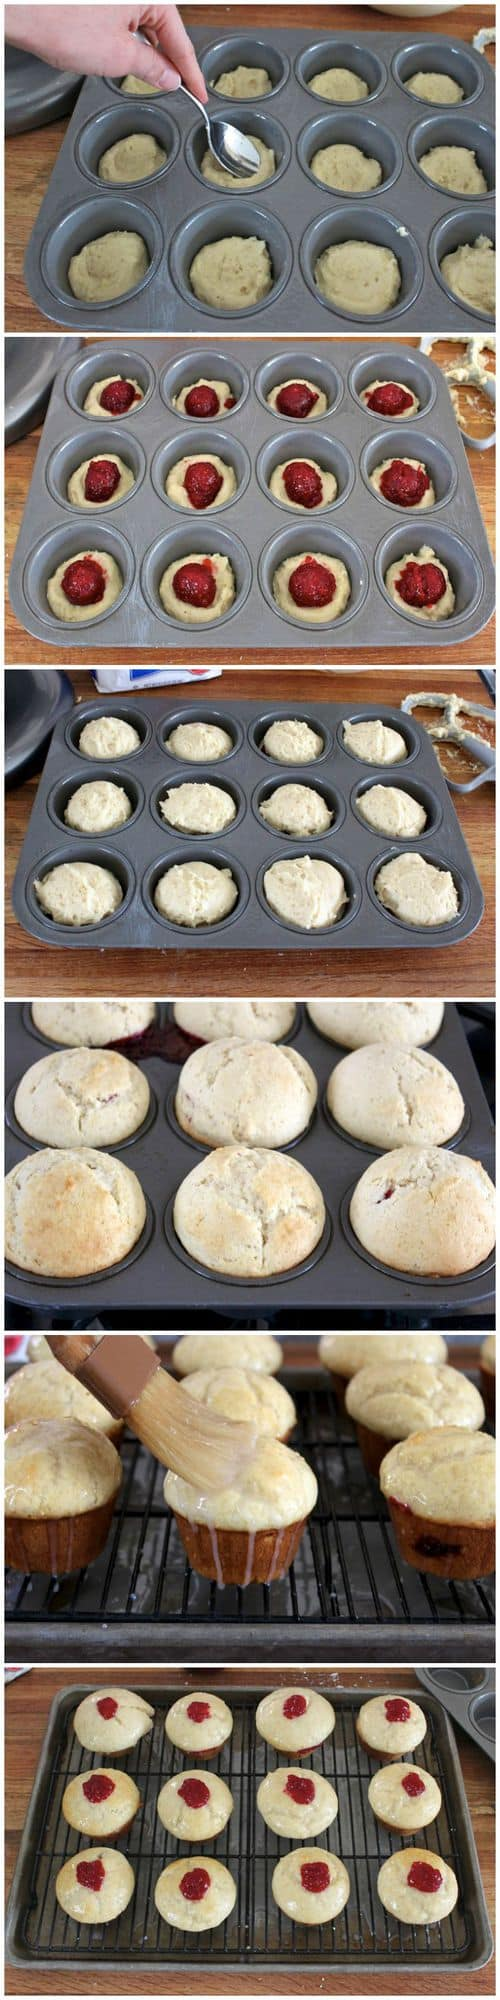 Jelly-Filled Donut Muffins